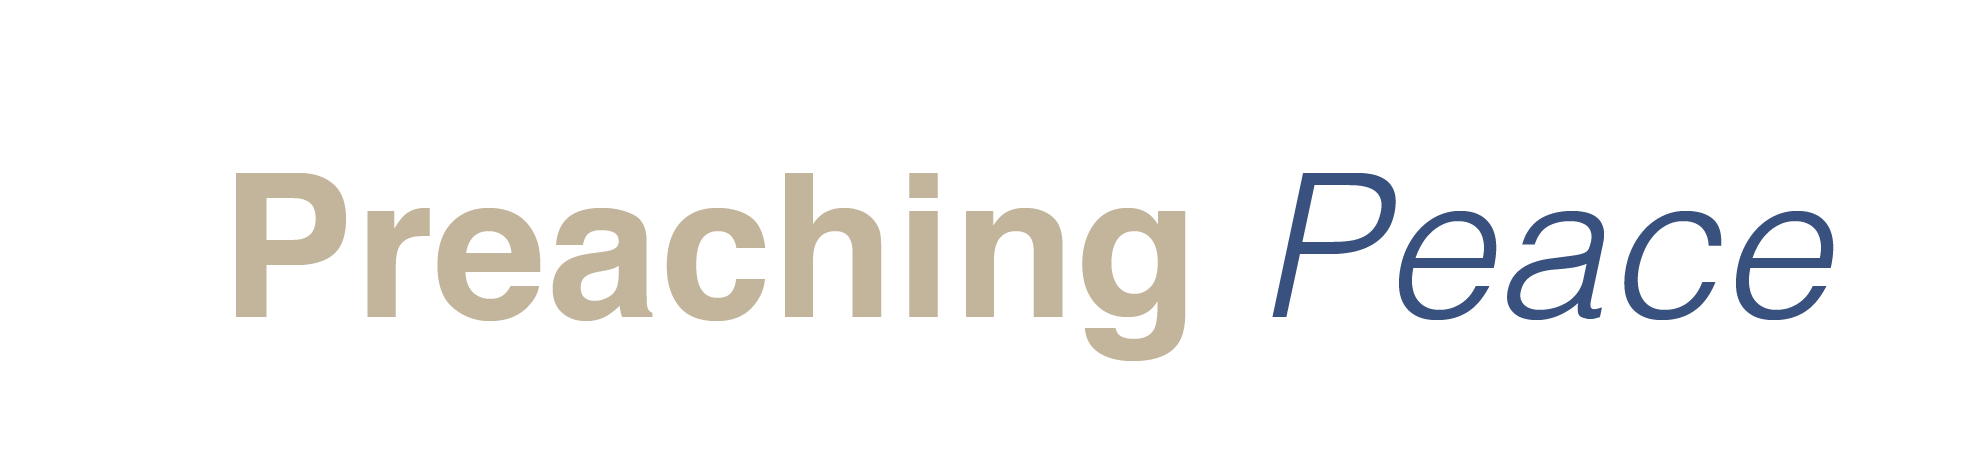 Preaching Peace Logo Text Only